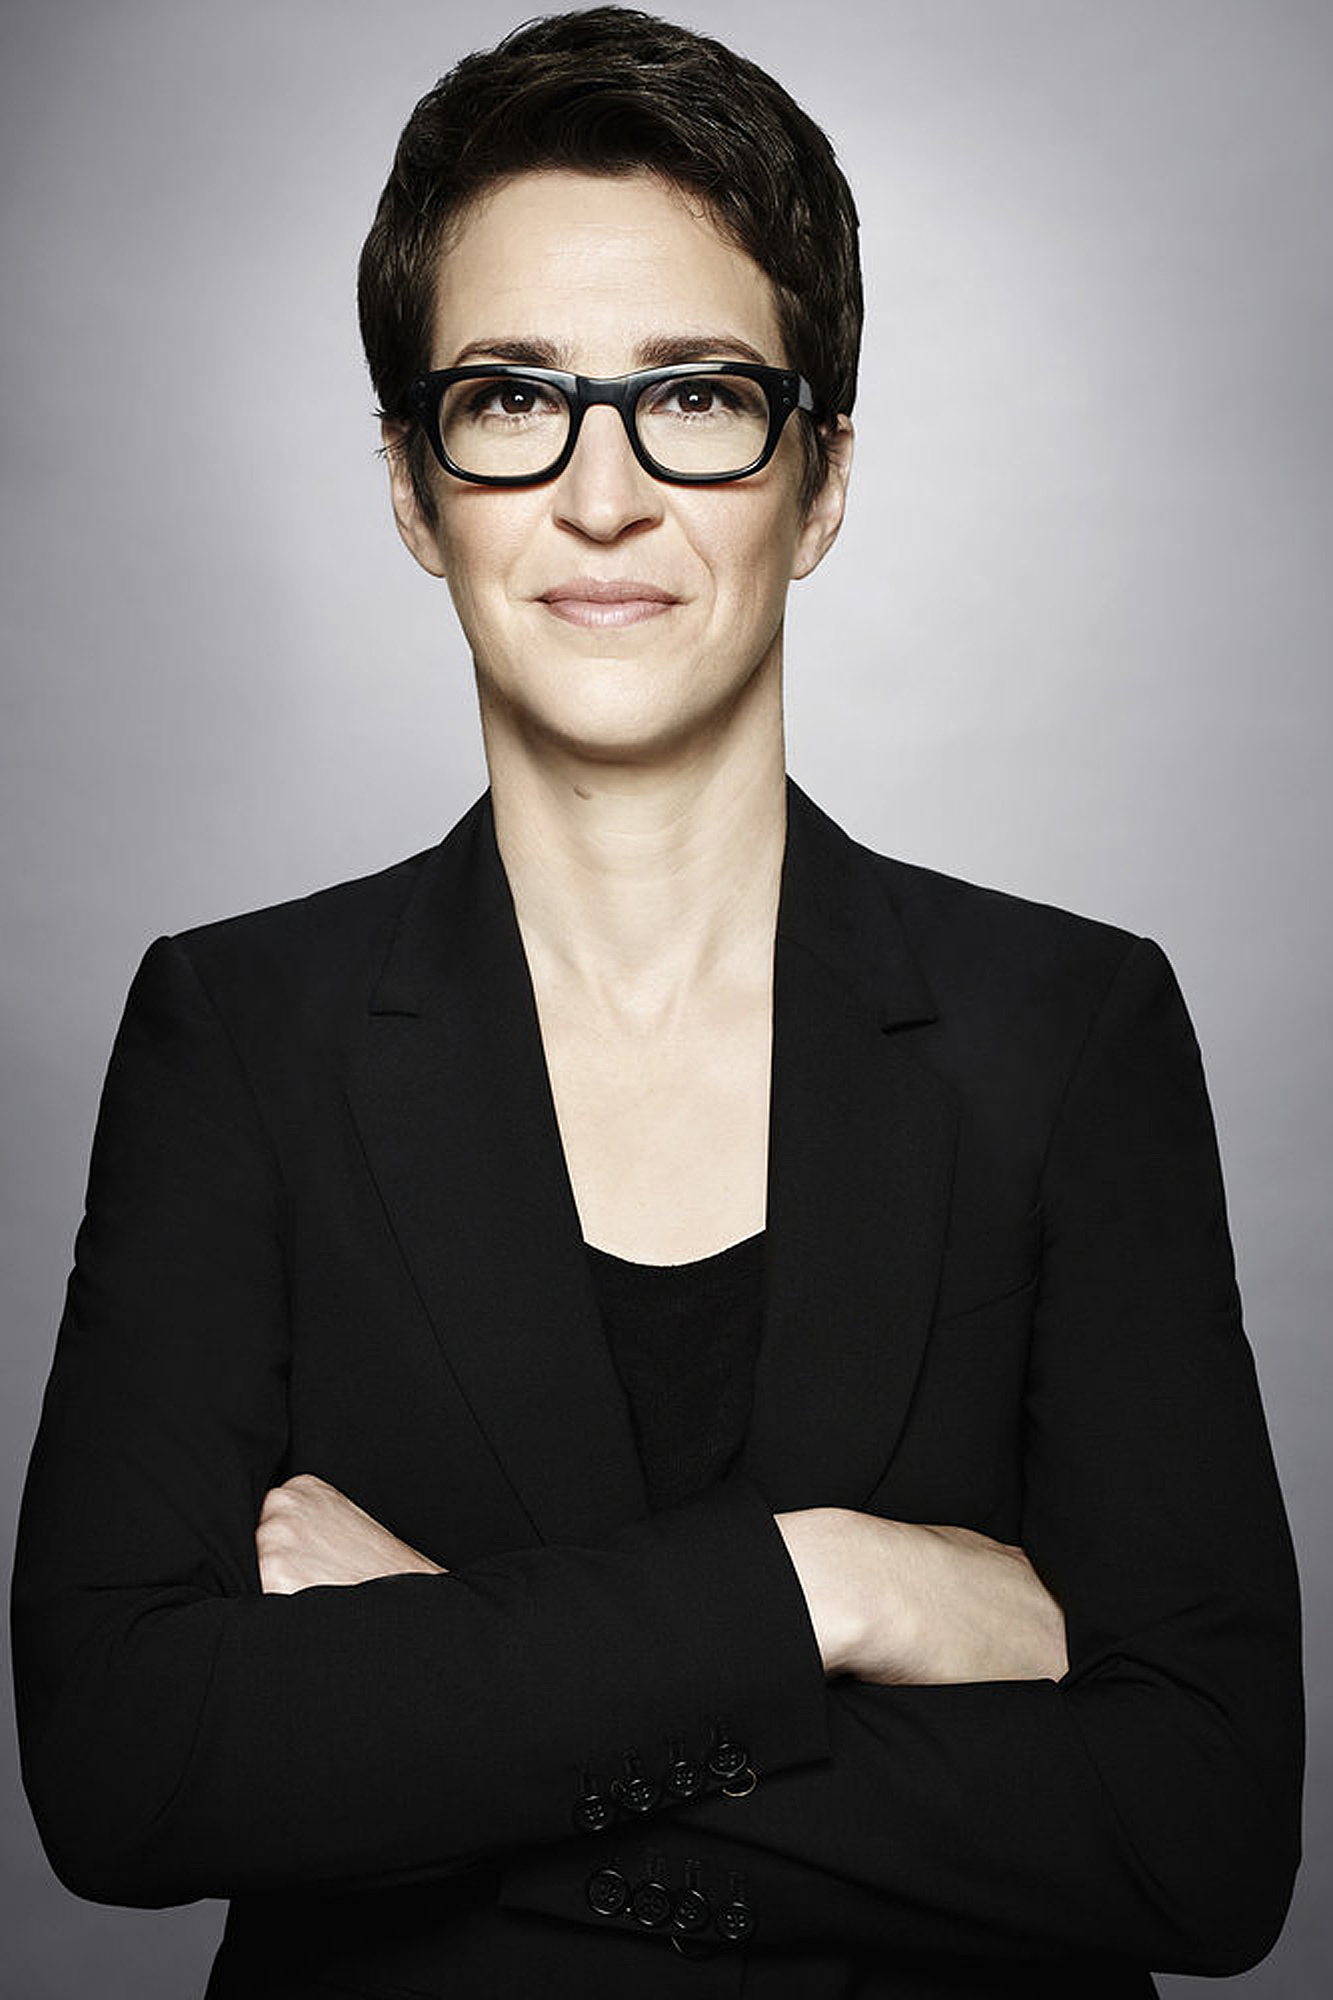 Rachel Maddow Net Worth (2021), Height, Age, Bio and Facts